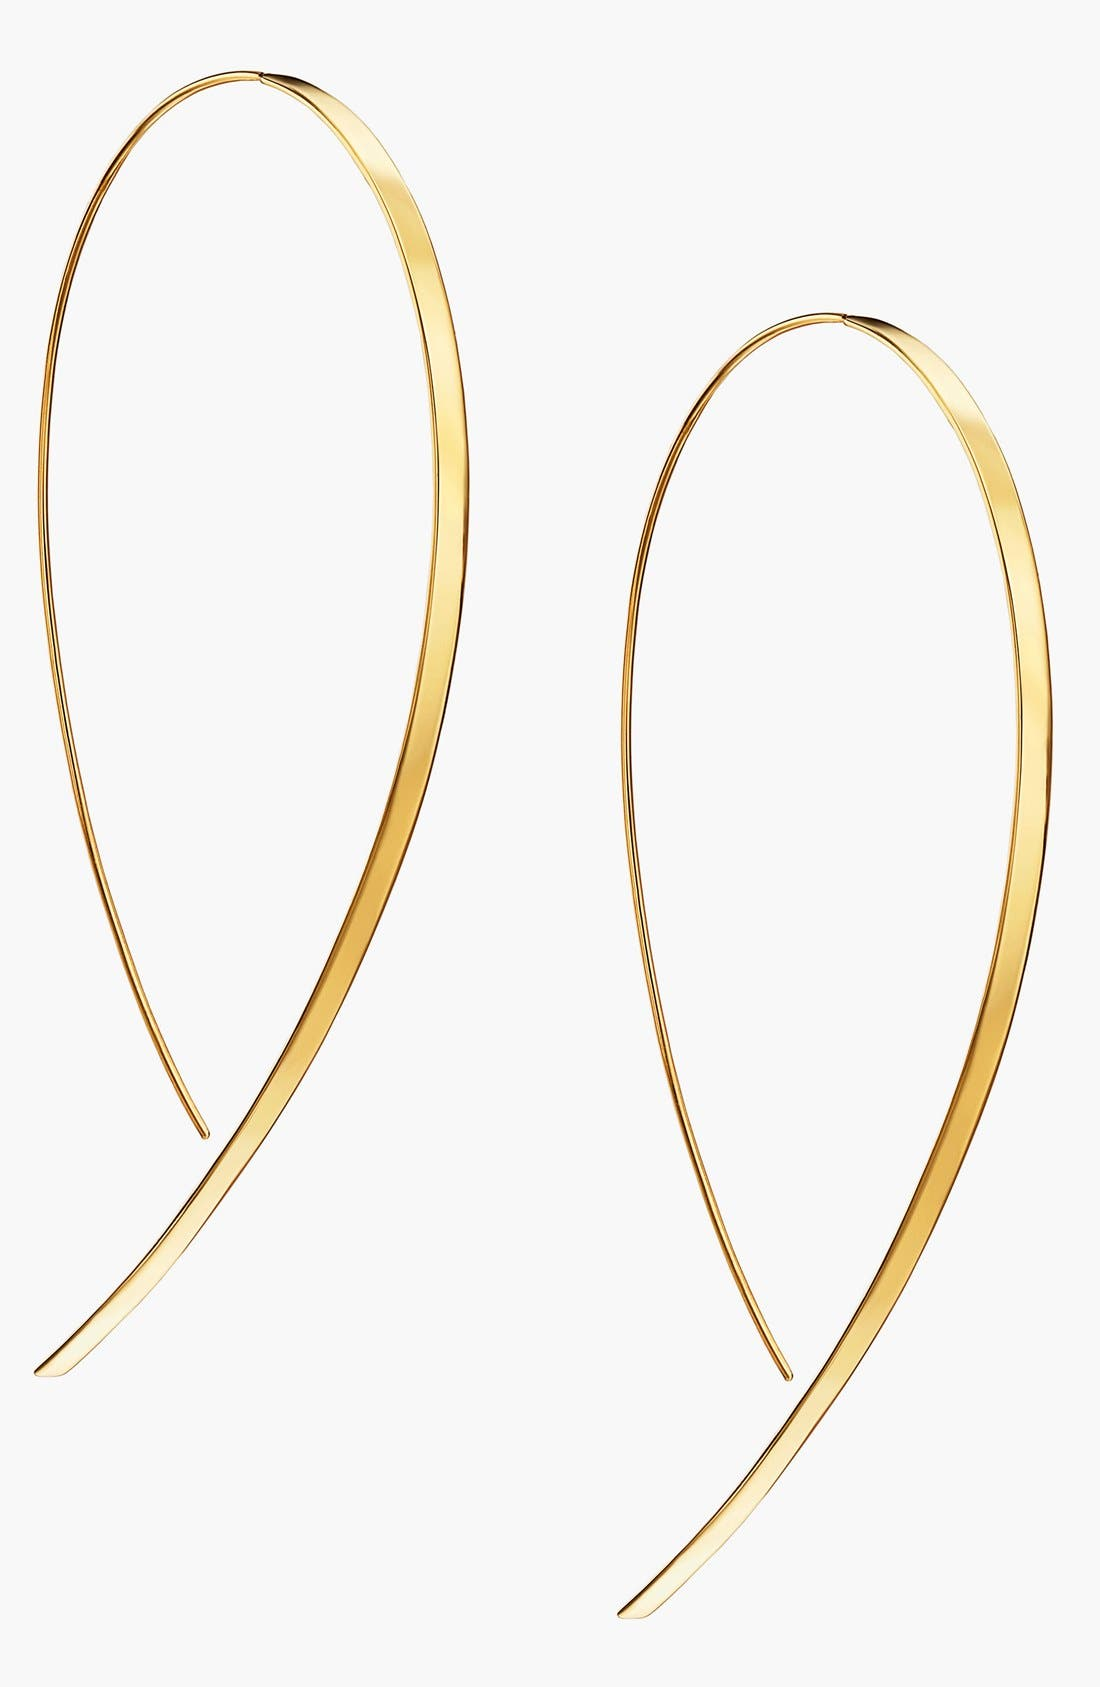 'Hooked On Hoop' Large Flat Earrings,                             Main thumbnail 1, color,                             YELLOW GOLD